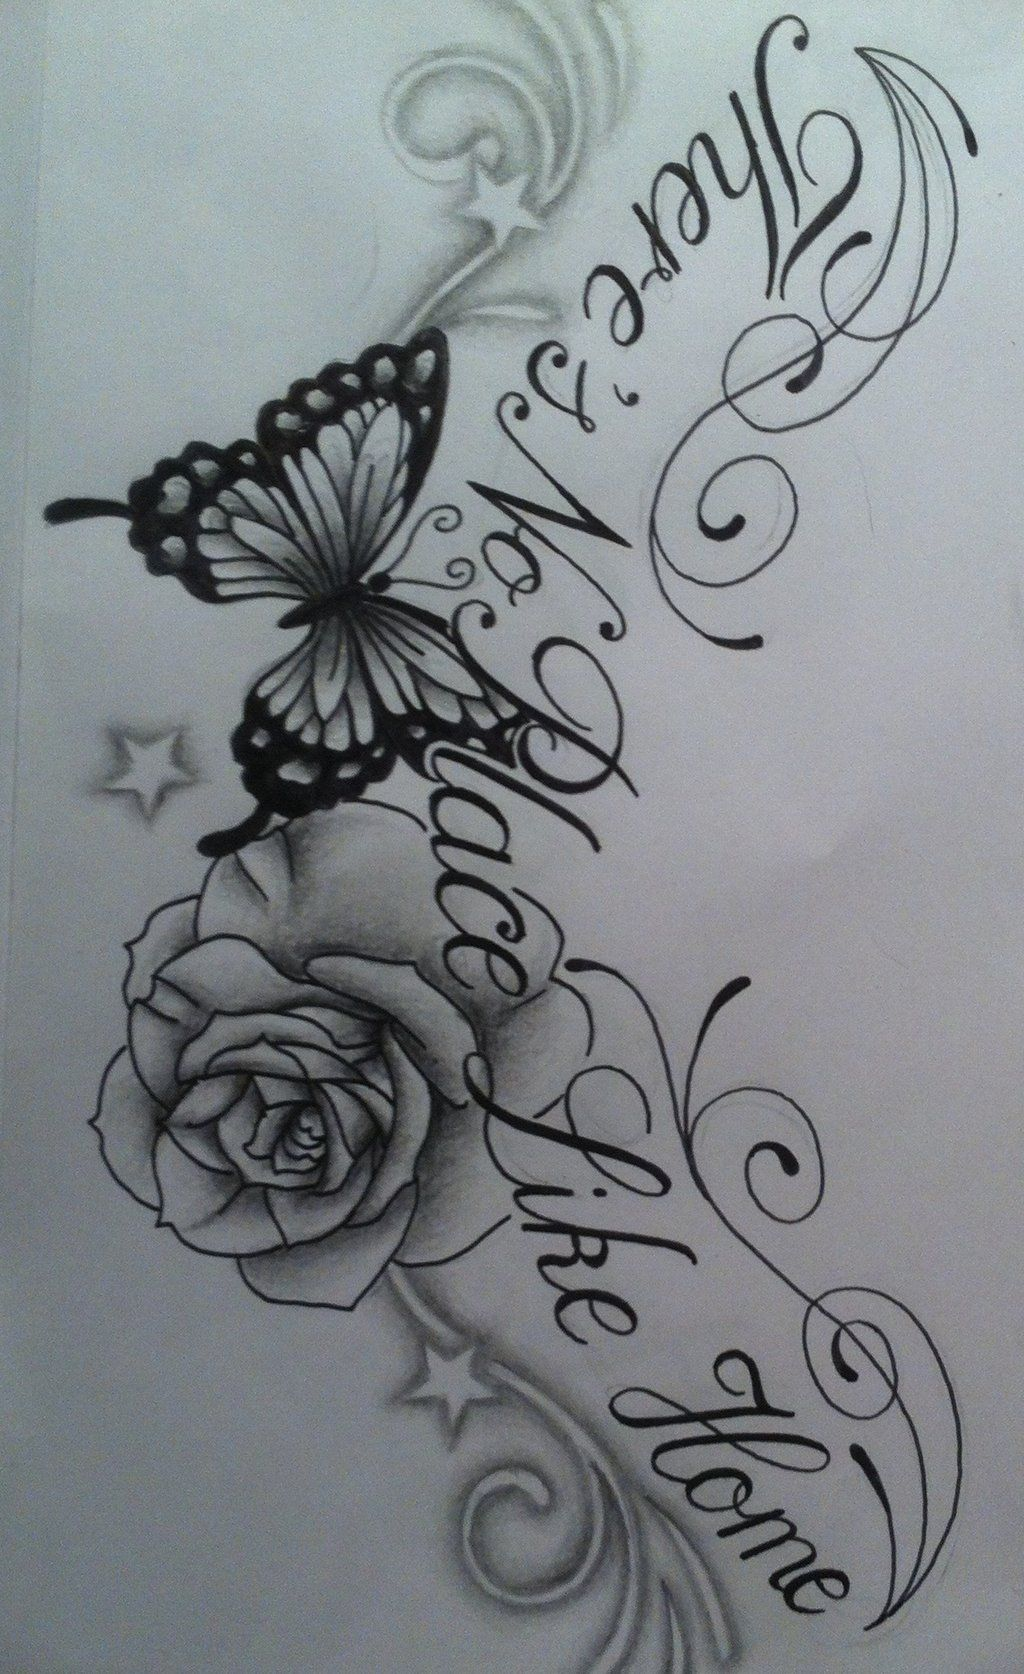 Butterfly star tattoo designs - Images Of Roses And Butterfly Tattoos Butterfly Rose Chest Tattoo Design With Text By